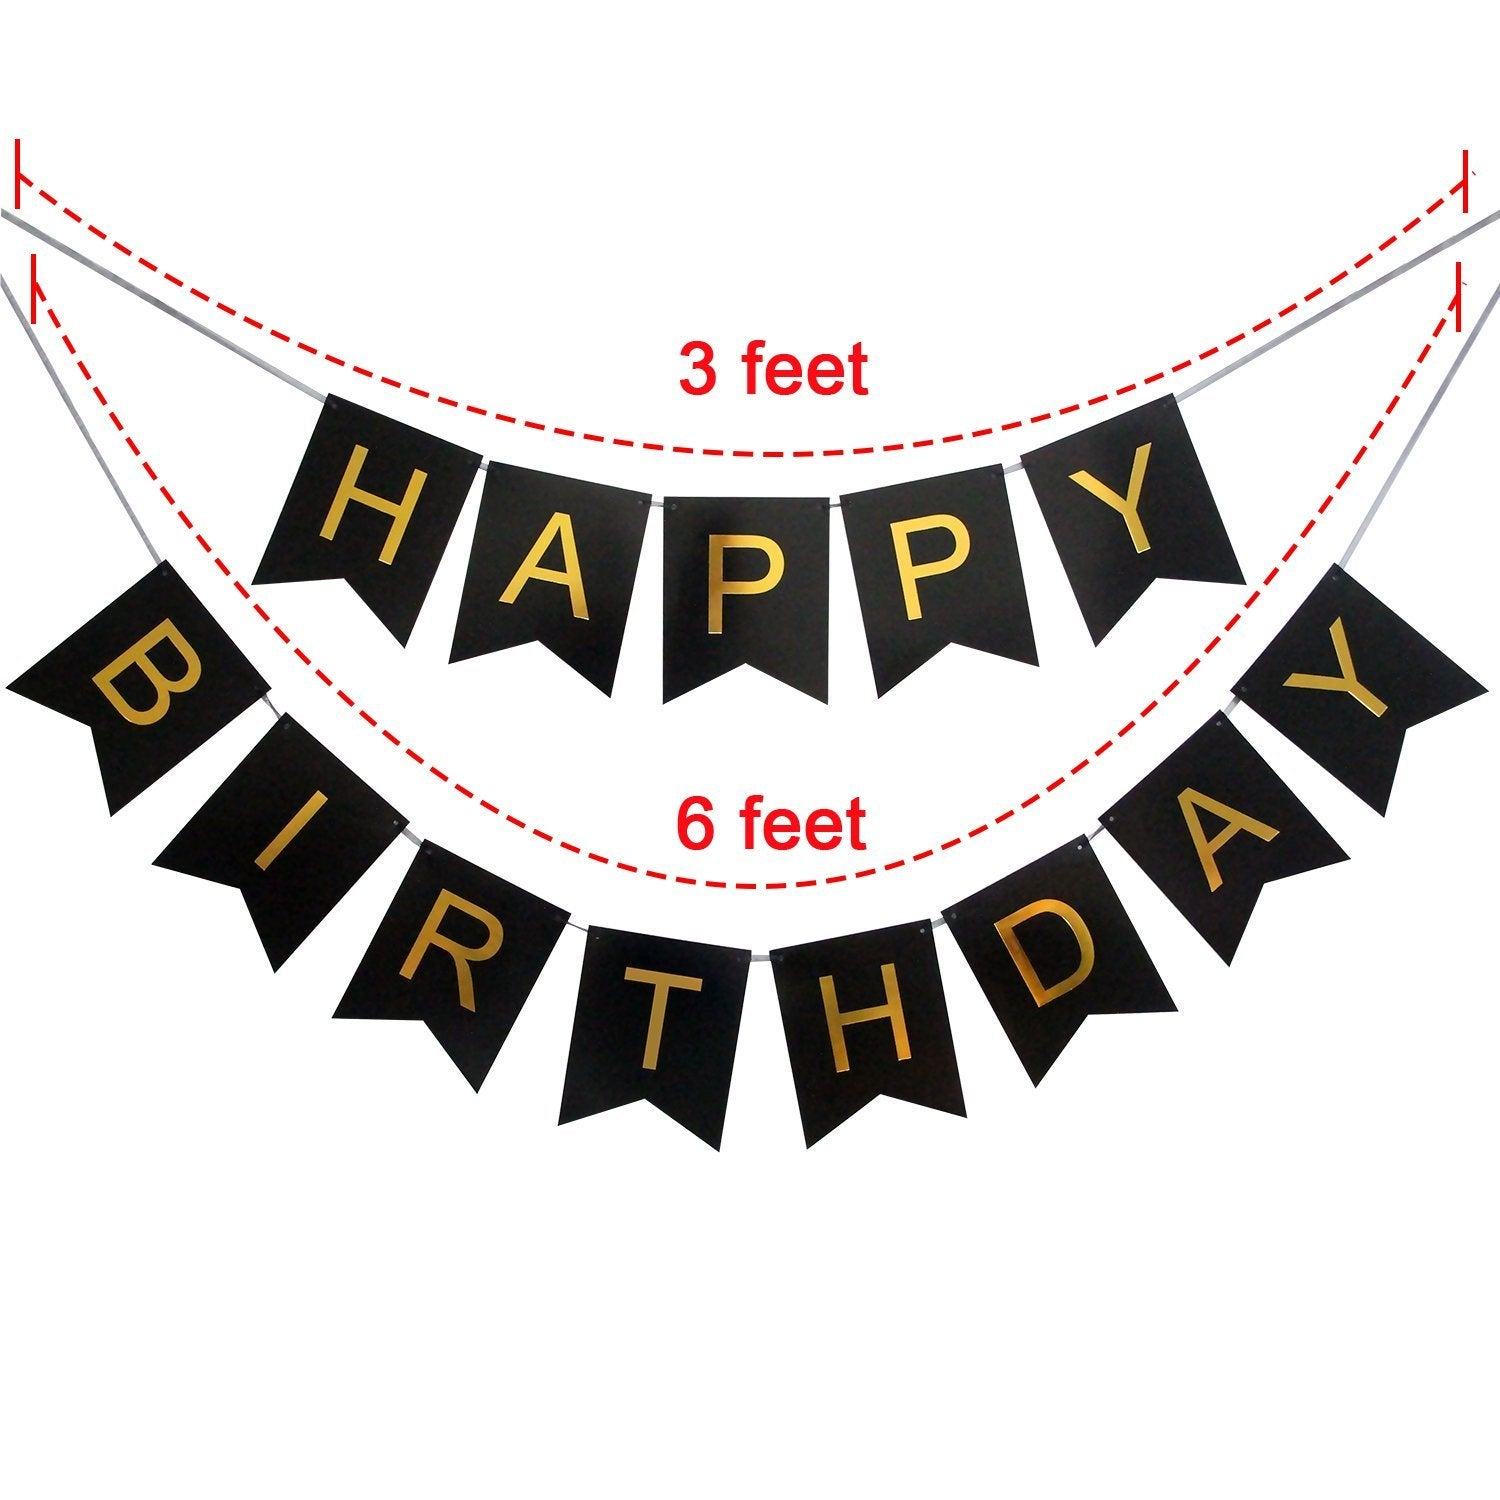 30th birthday party decorations kit happy birthday banner 30th